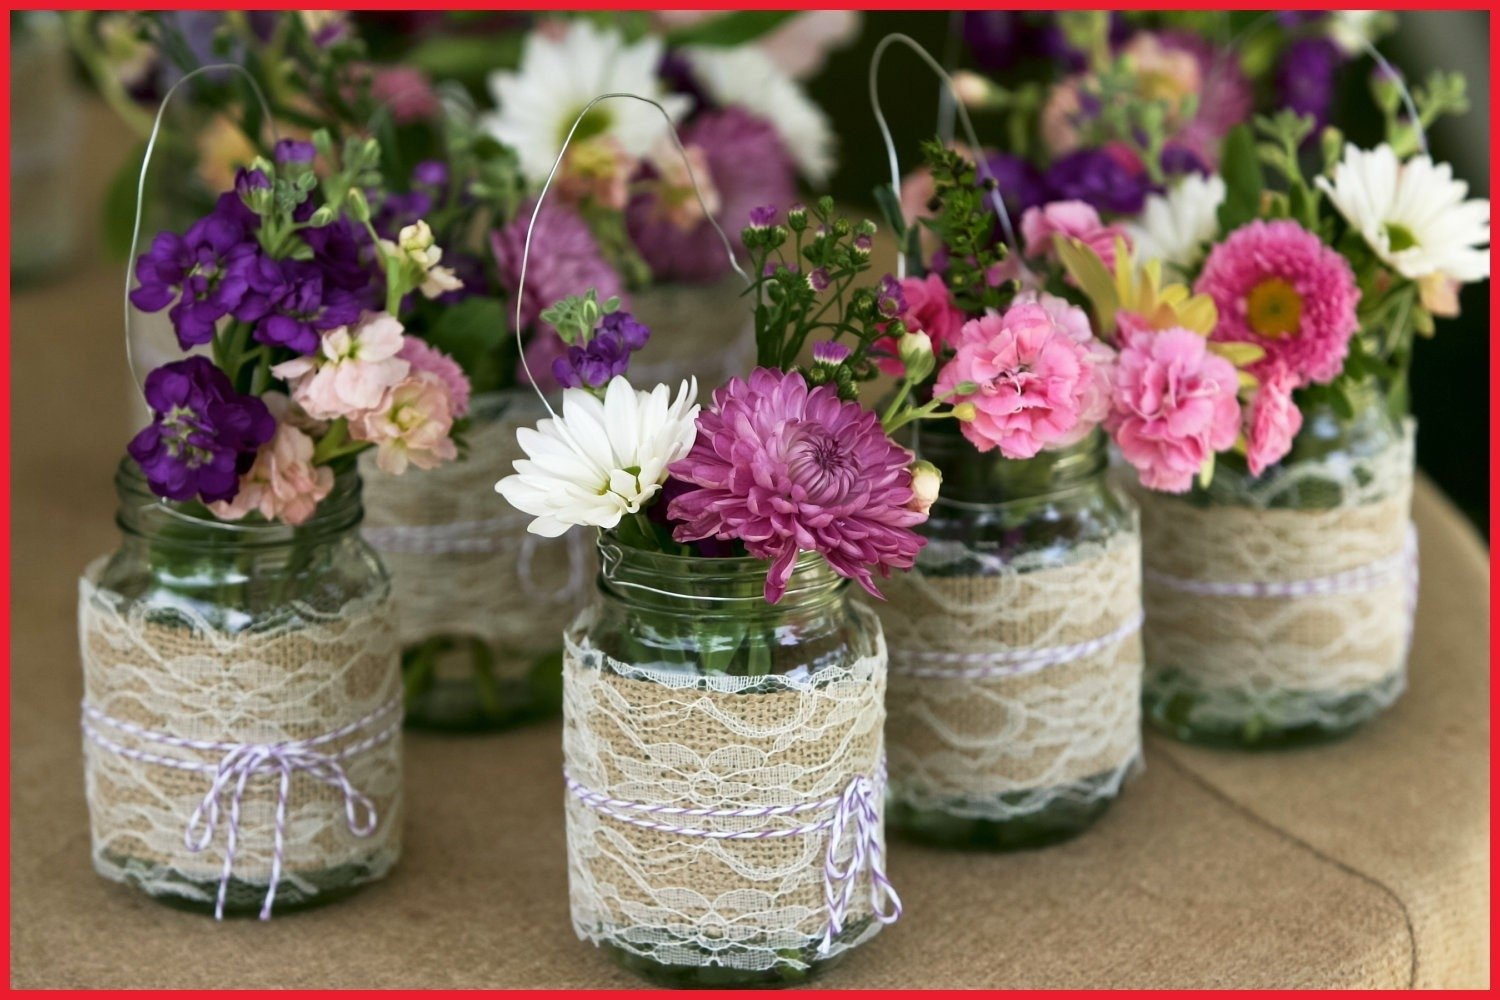 10 Lovable Mason Jar Ideas For Weddings ideas for mason jars weddings homemade jar centerpieces bridal 2020